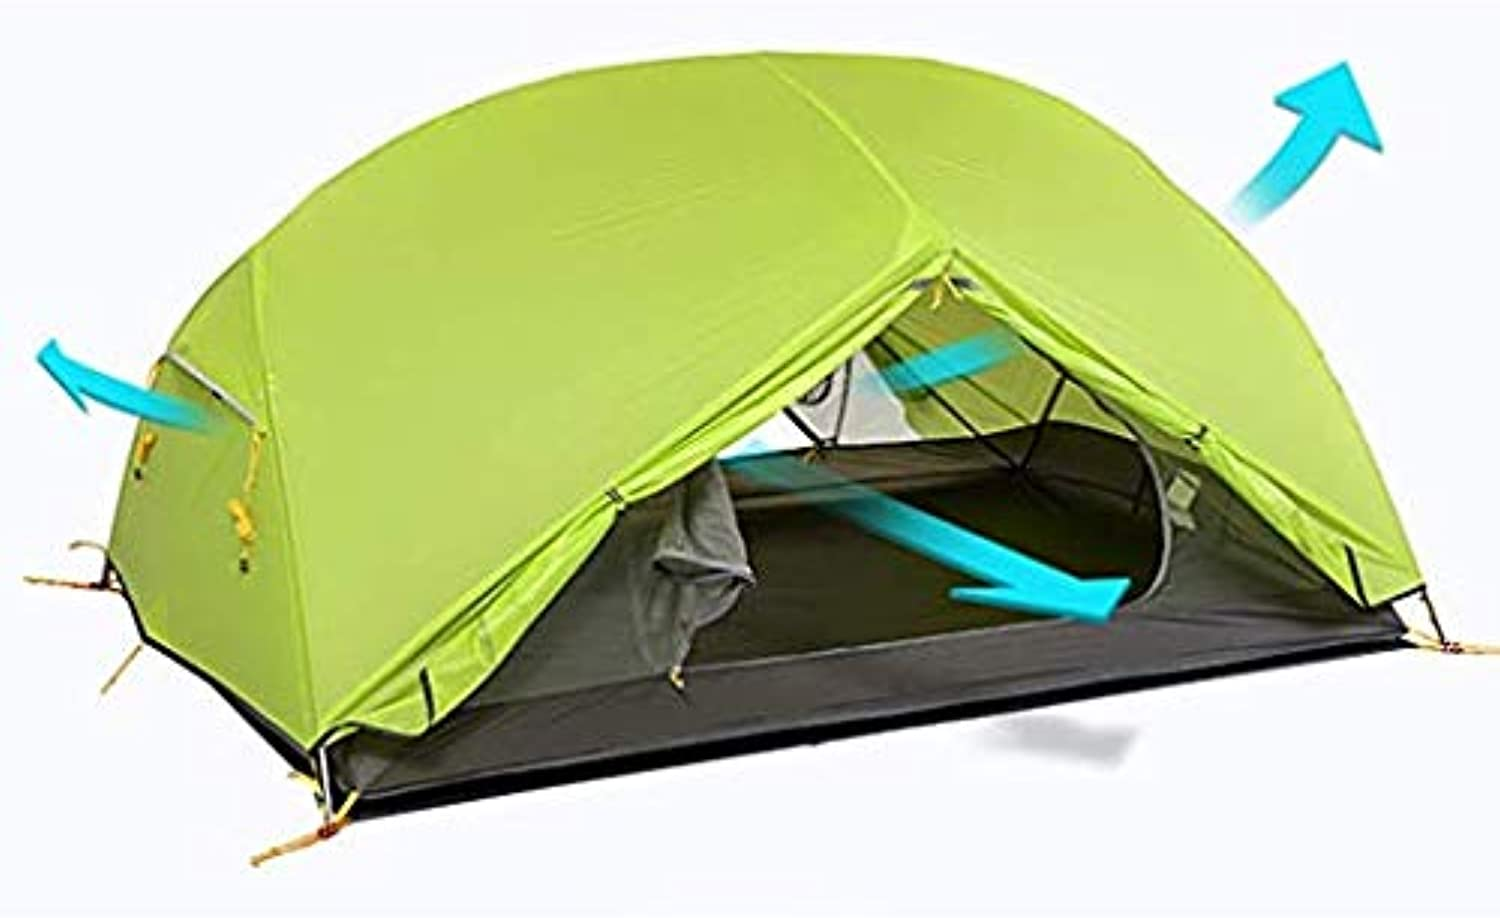 Portable Camping Tents 12 Person Easy Up Instant Dome Water Resistant Camping Tent,Blanket for Picnic,Beach,Hiking,Camping and Park